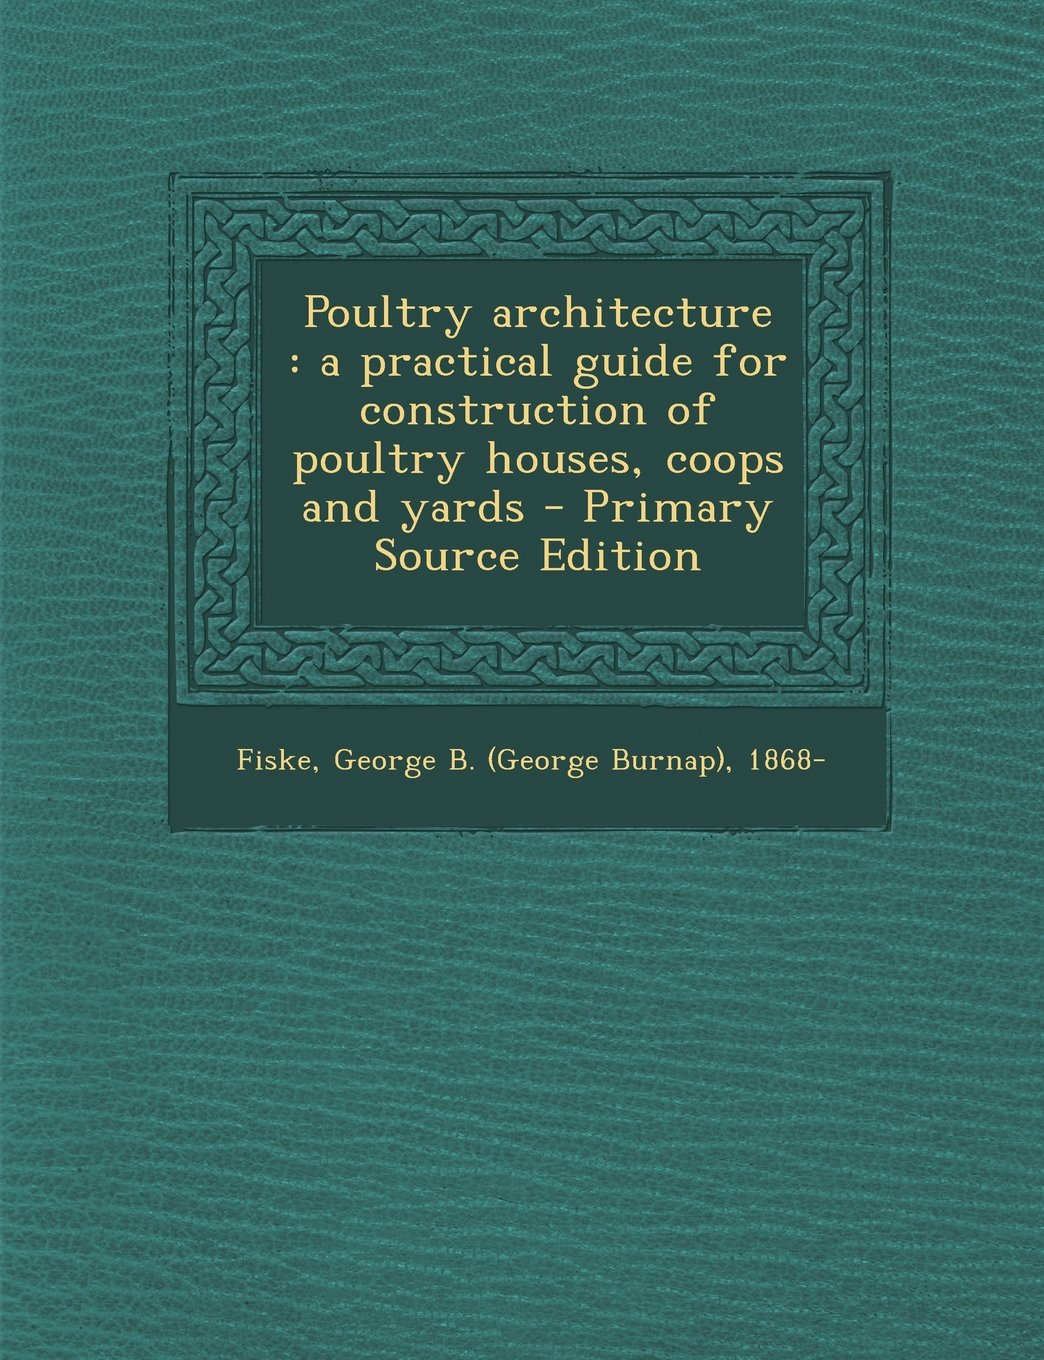 Poultry architecture: a practical guide for construction of poultry houses, coops and yards ebook